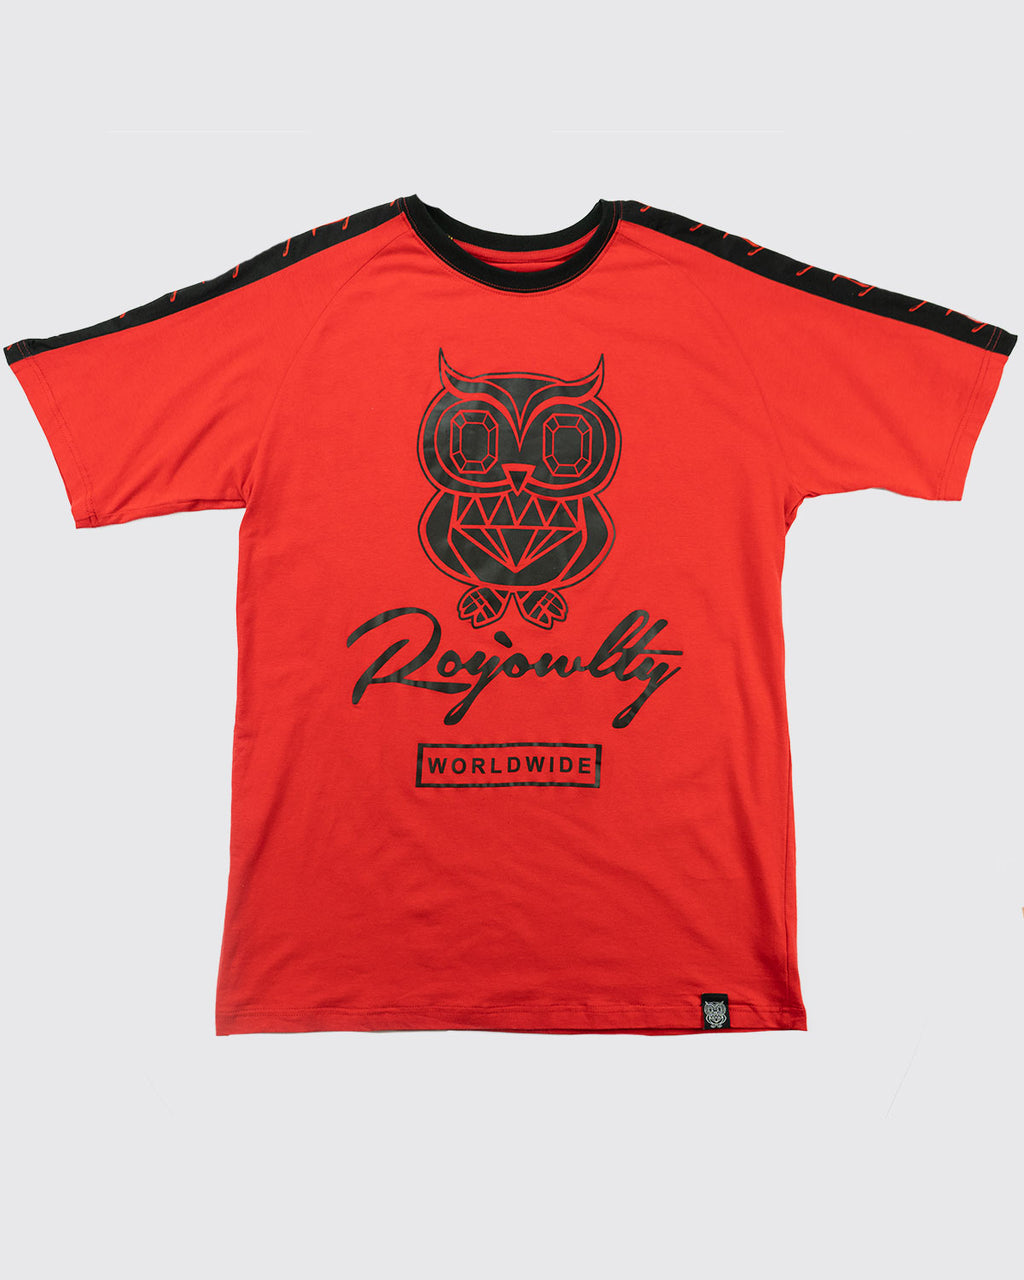 Originals Tee(short sleeve)-Red